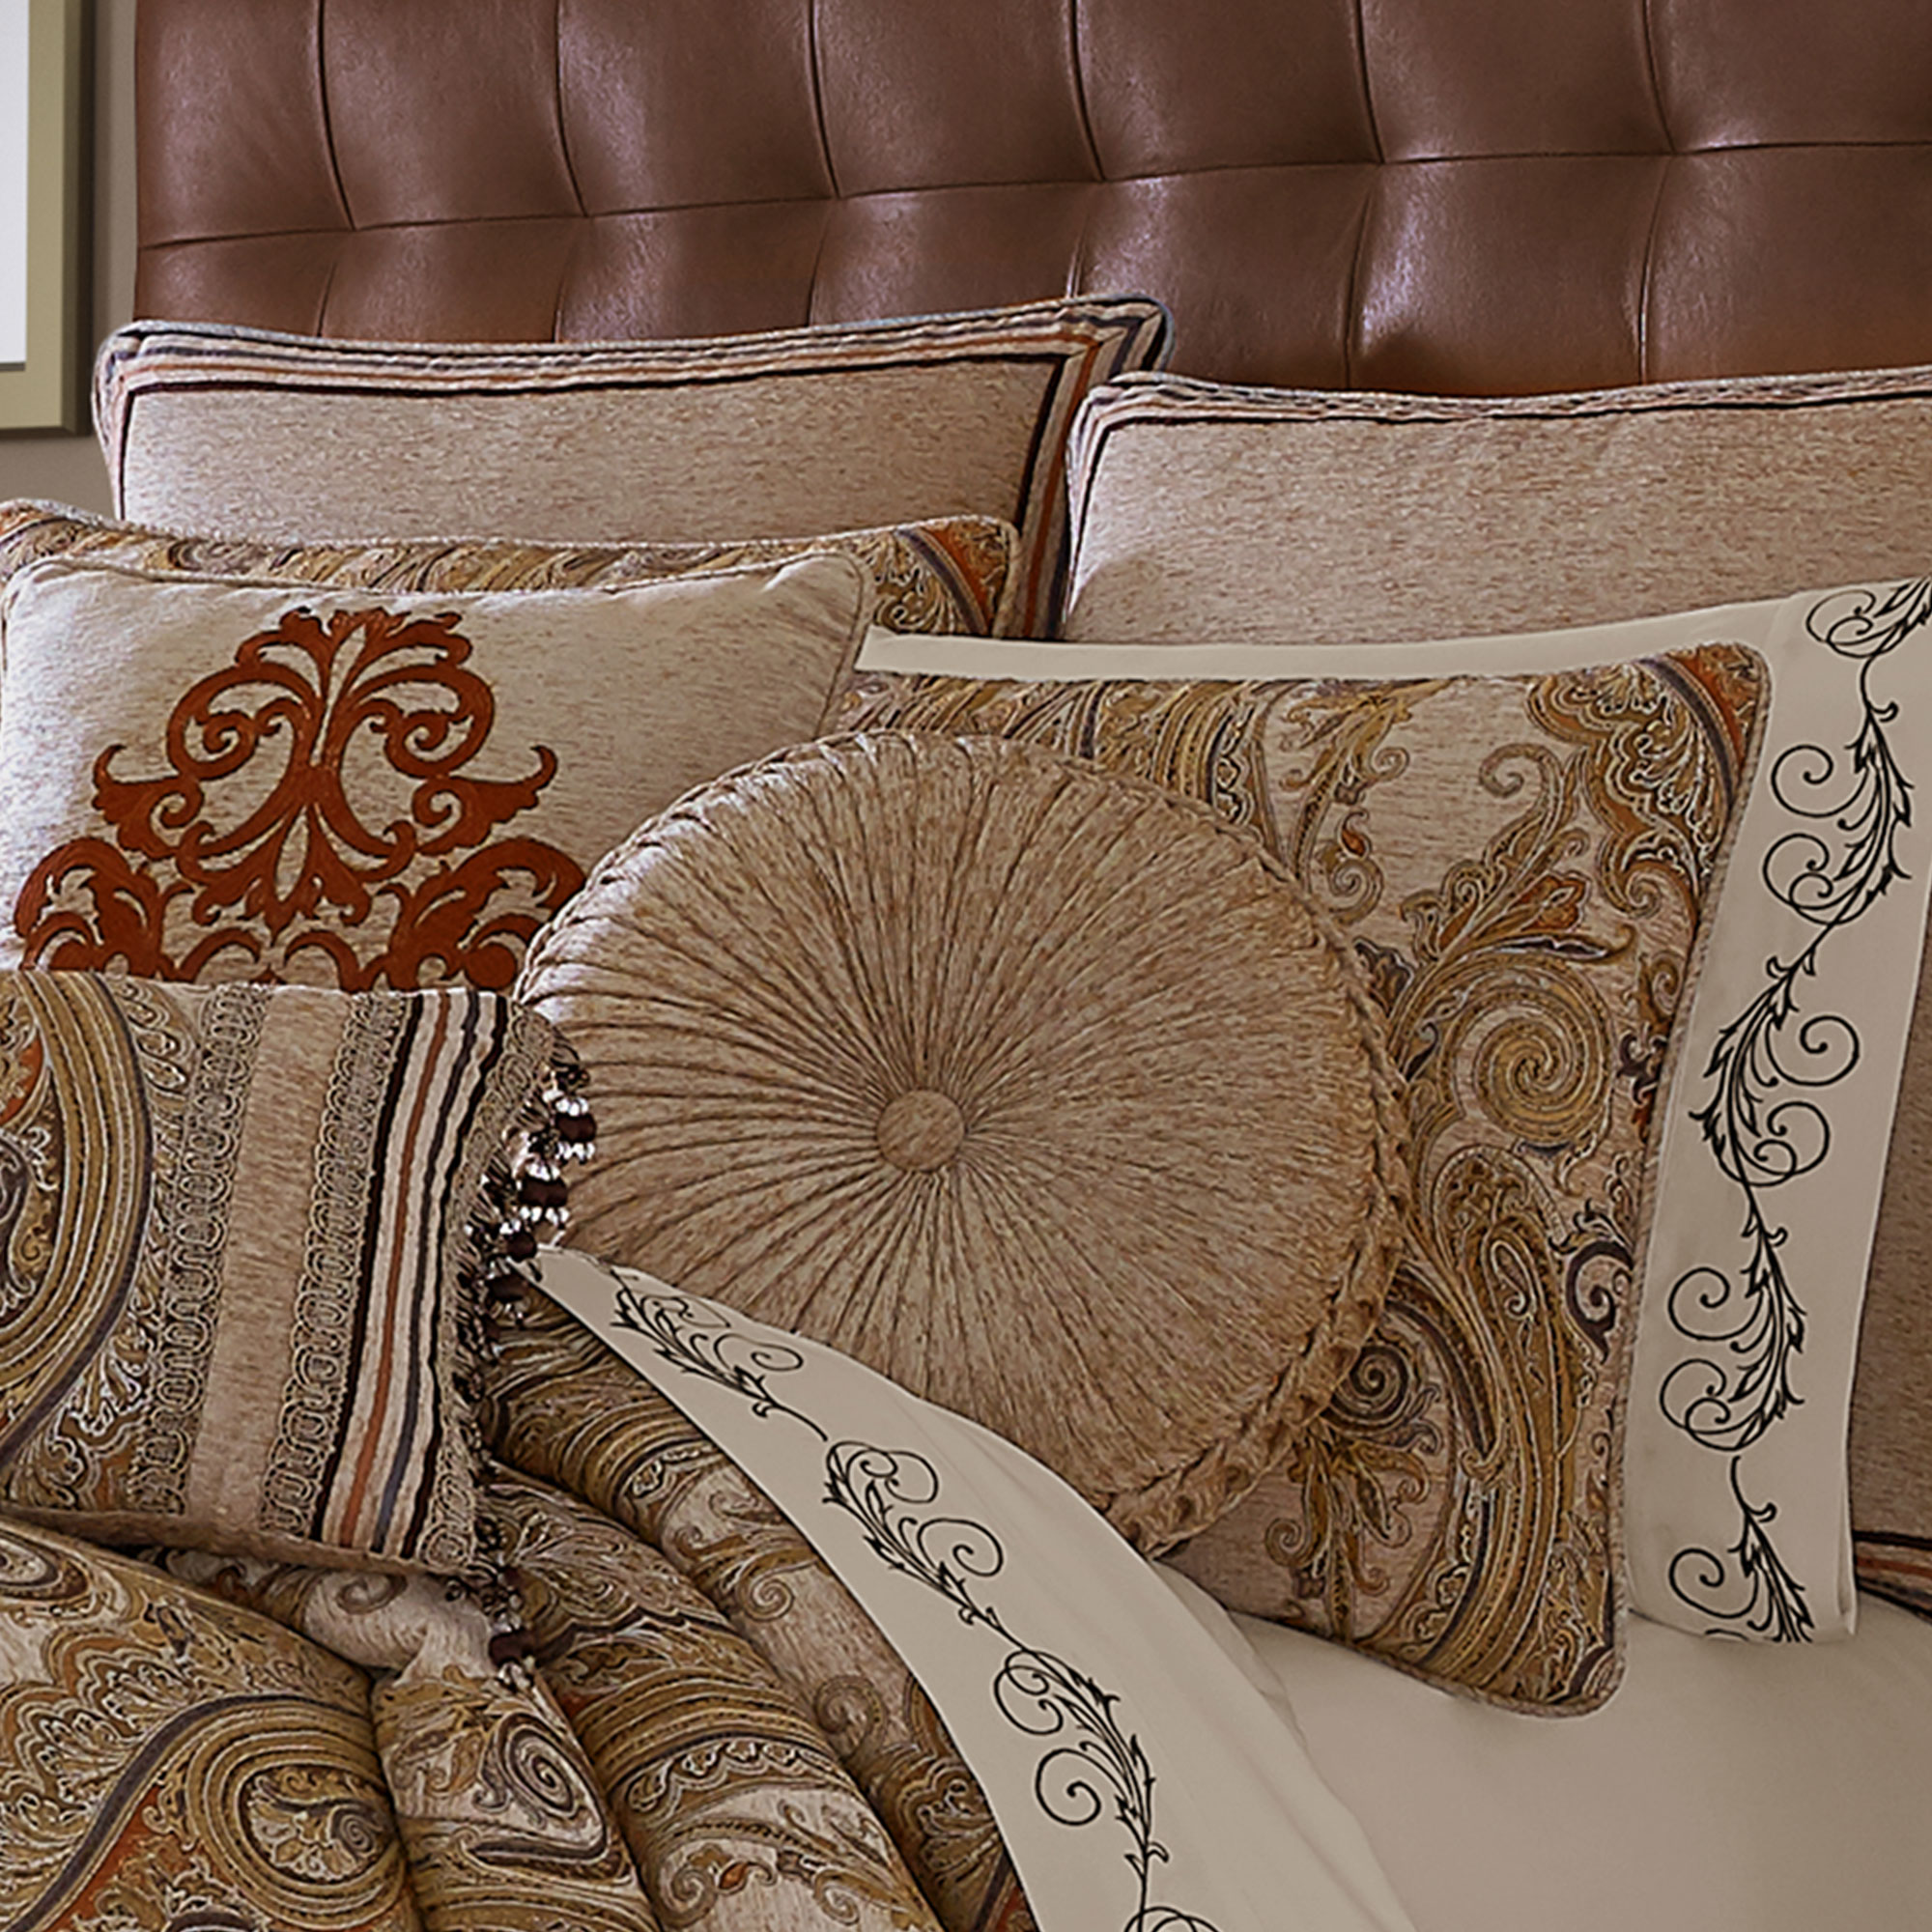 Luciana Beige Queen 4 Pcs Comforter Set